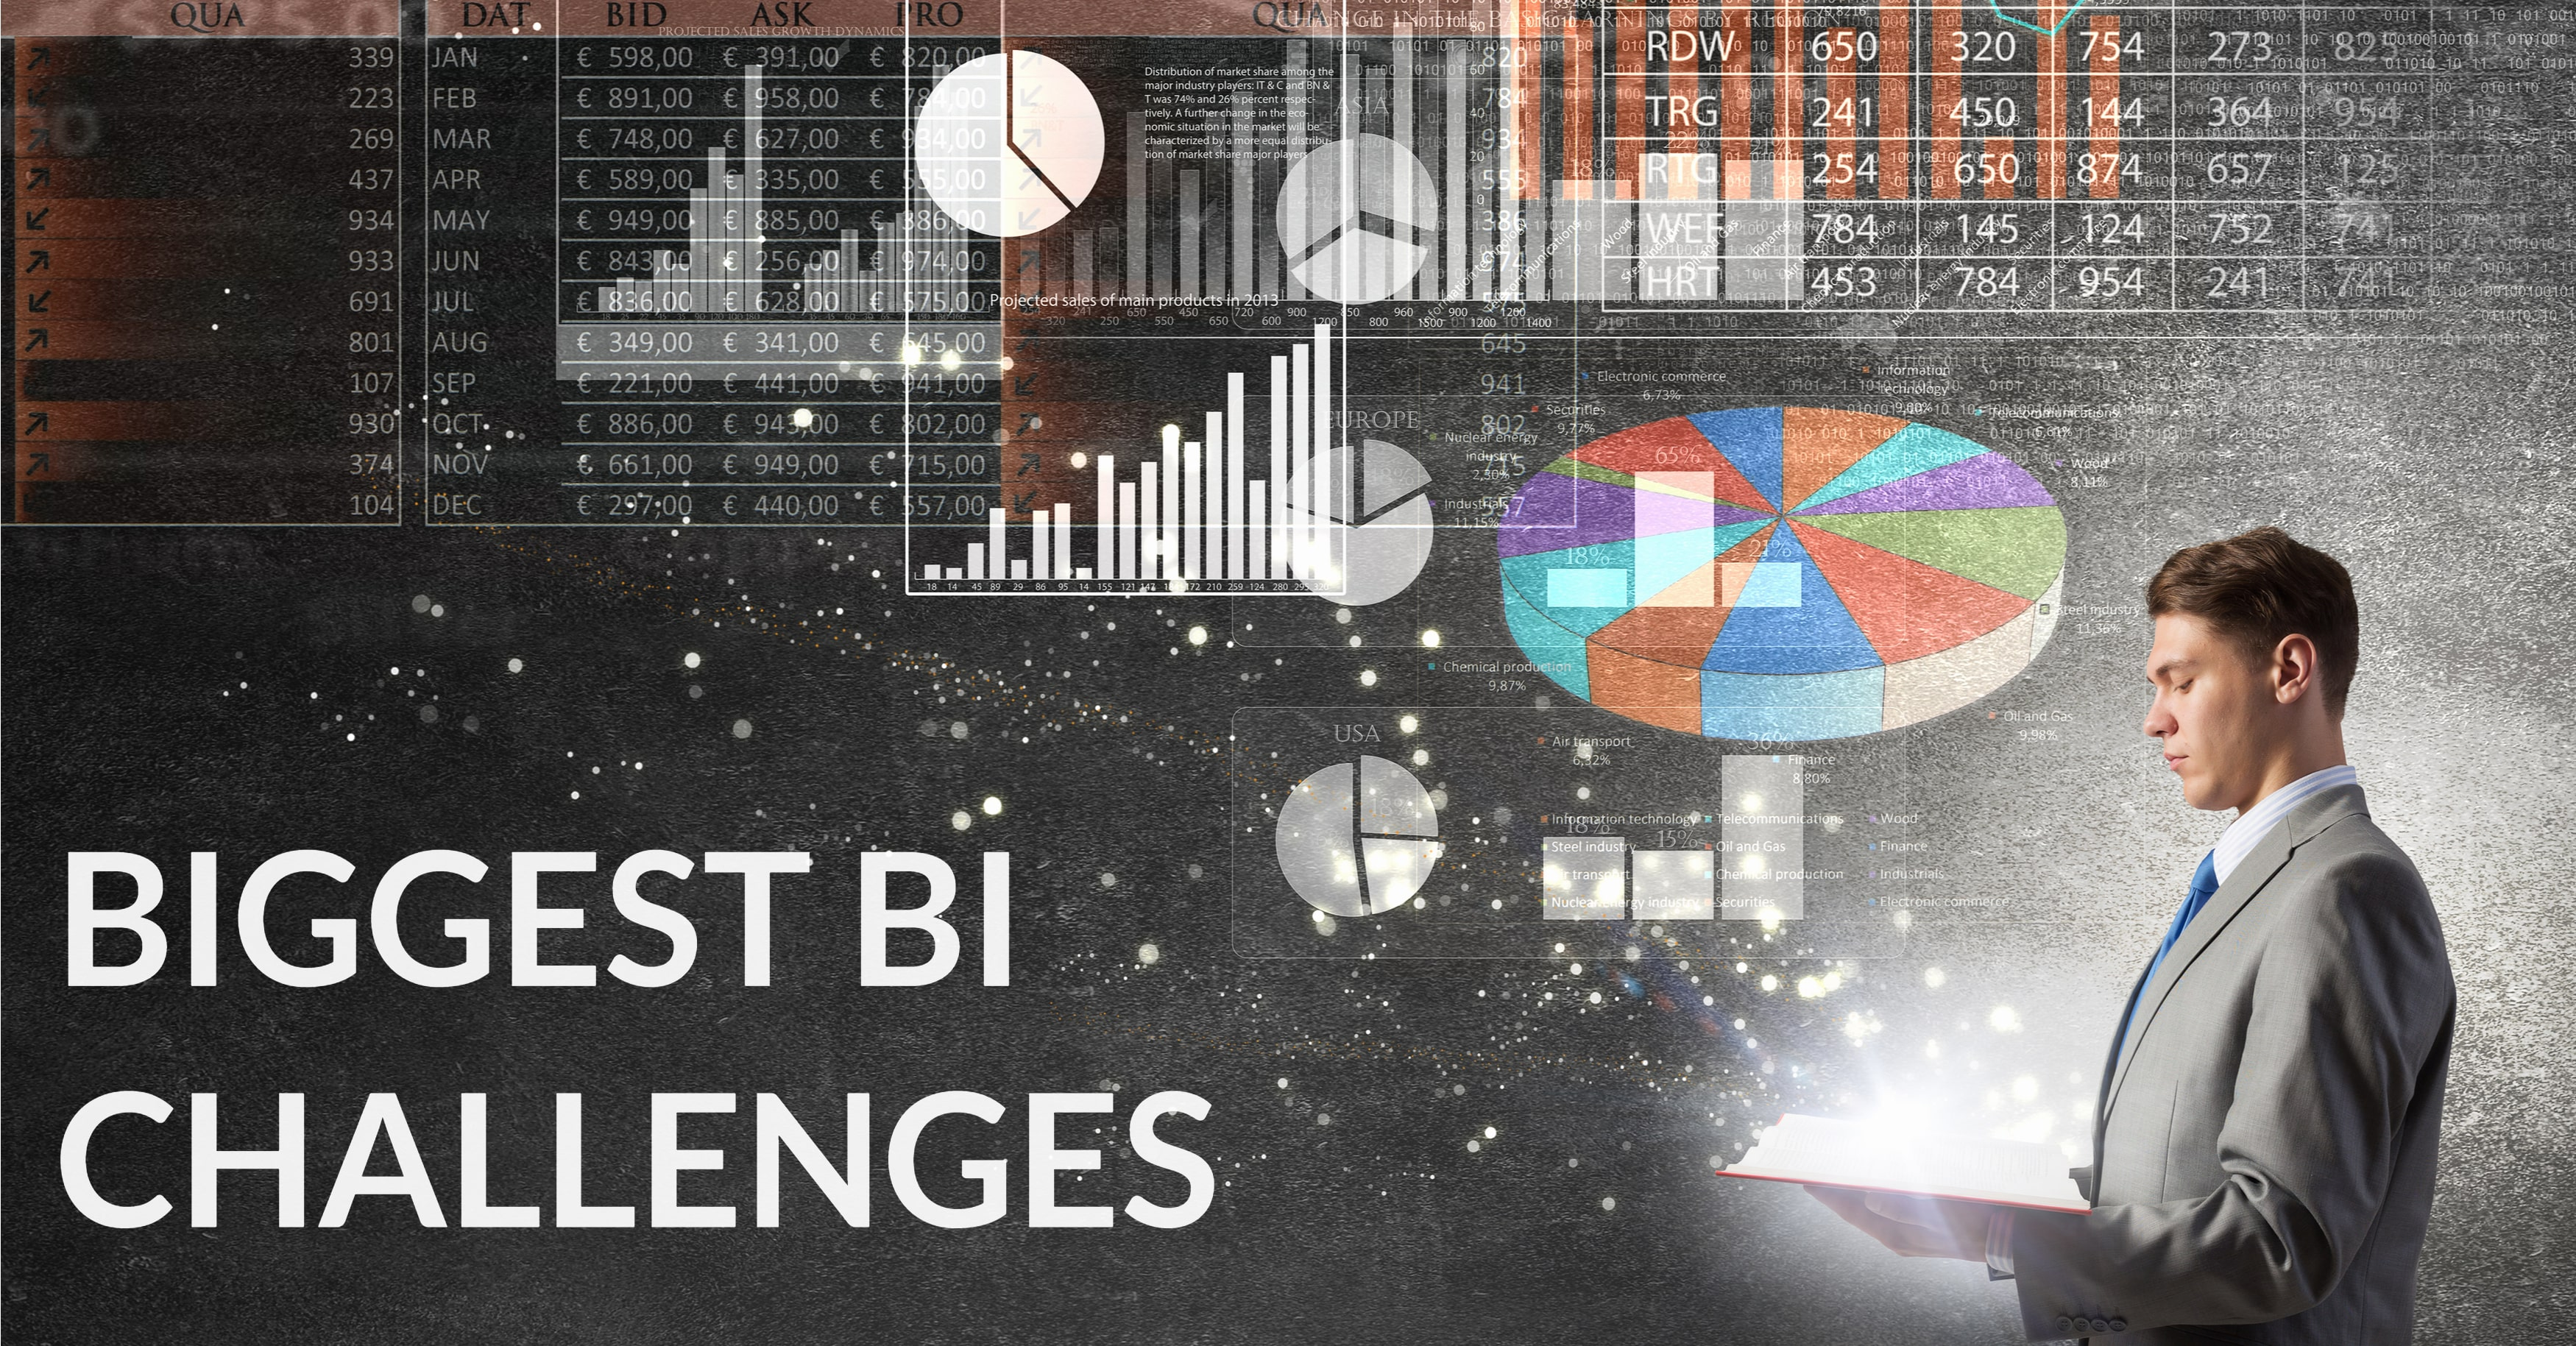 3 Biggest BI Challenges